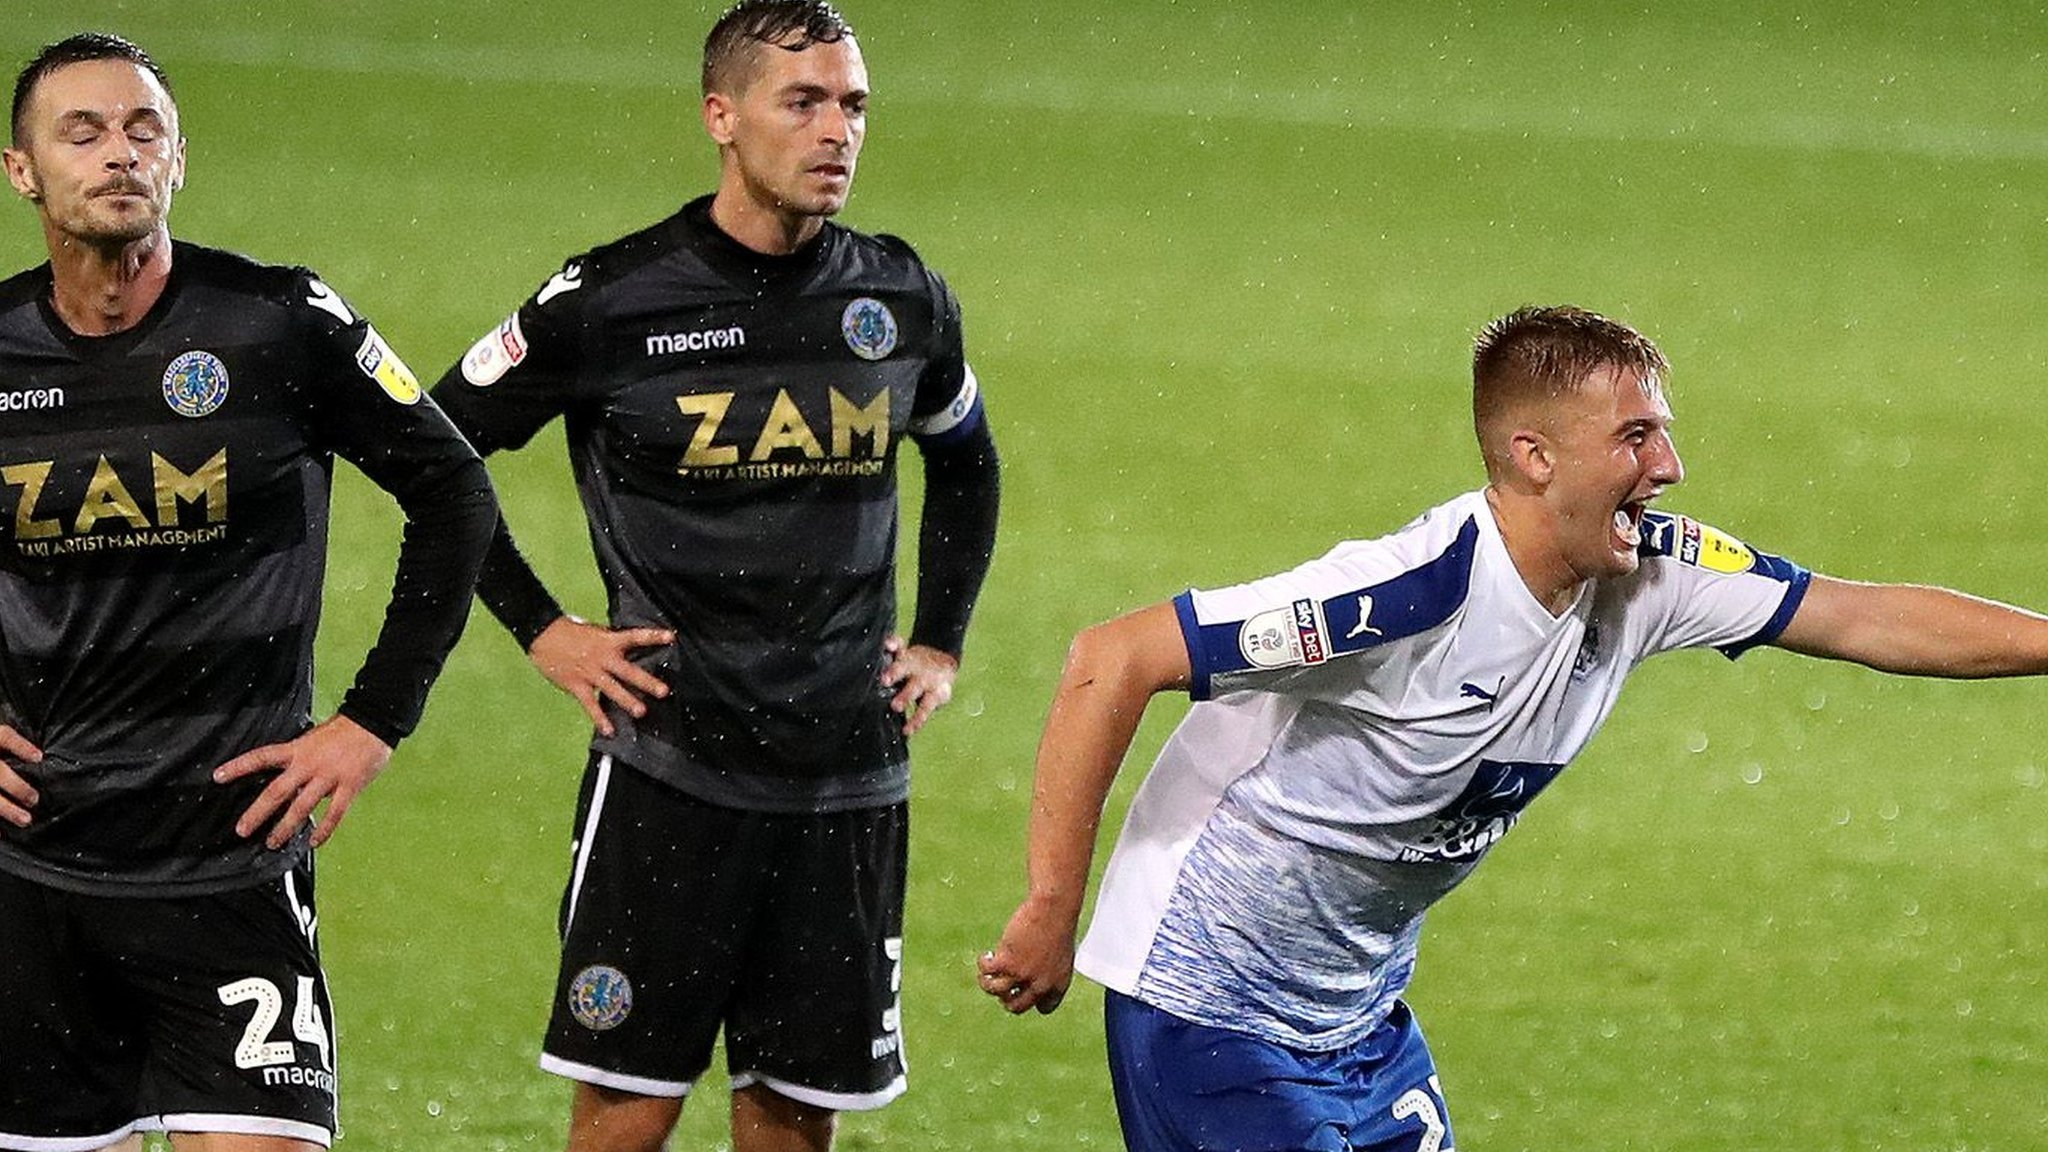 League Two: Tranmere Rovers 1-0 Macclesfield Town